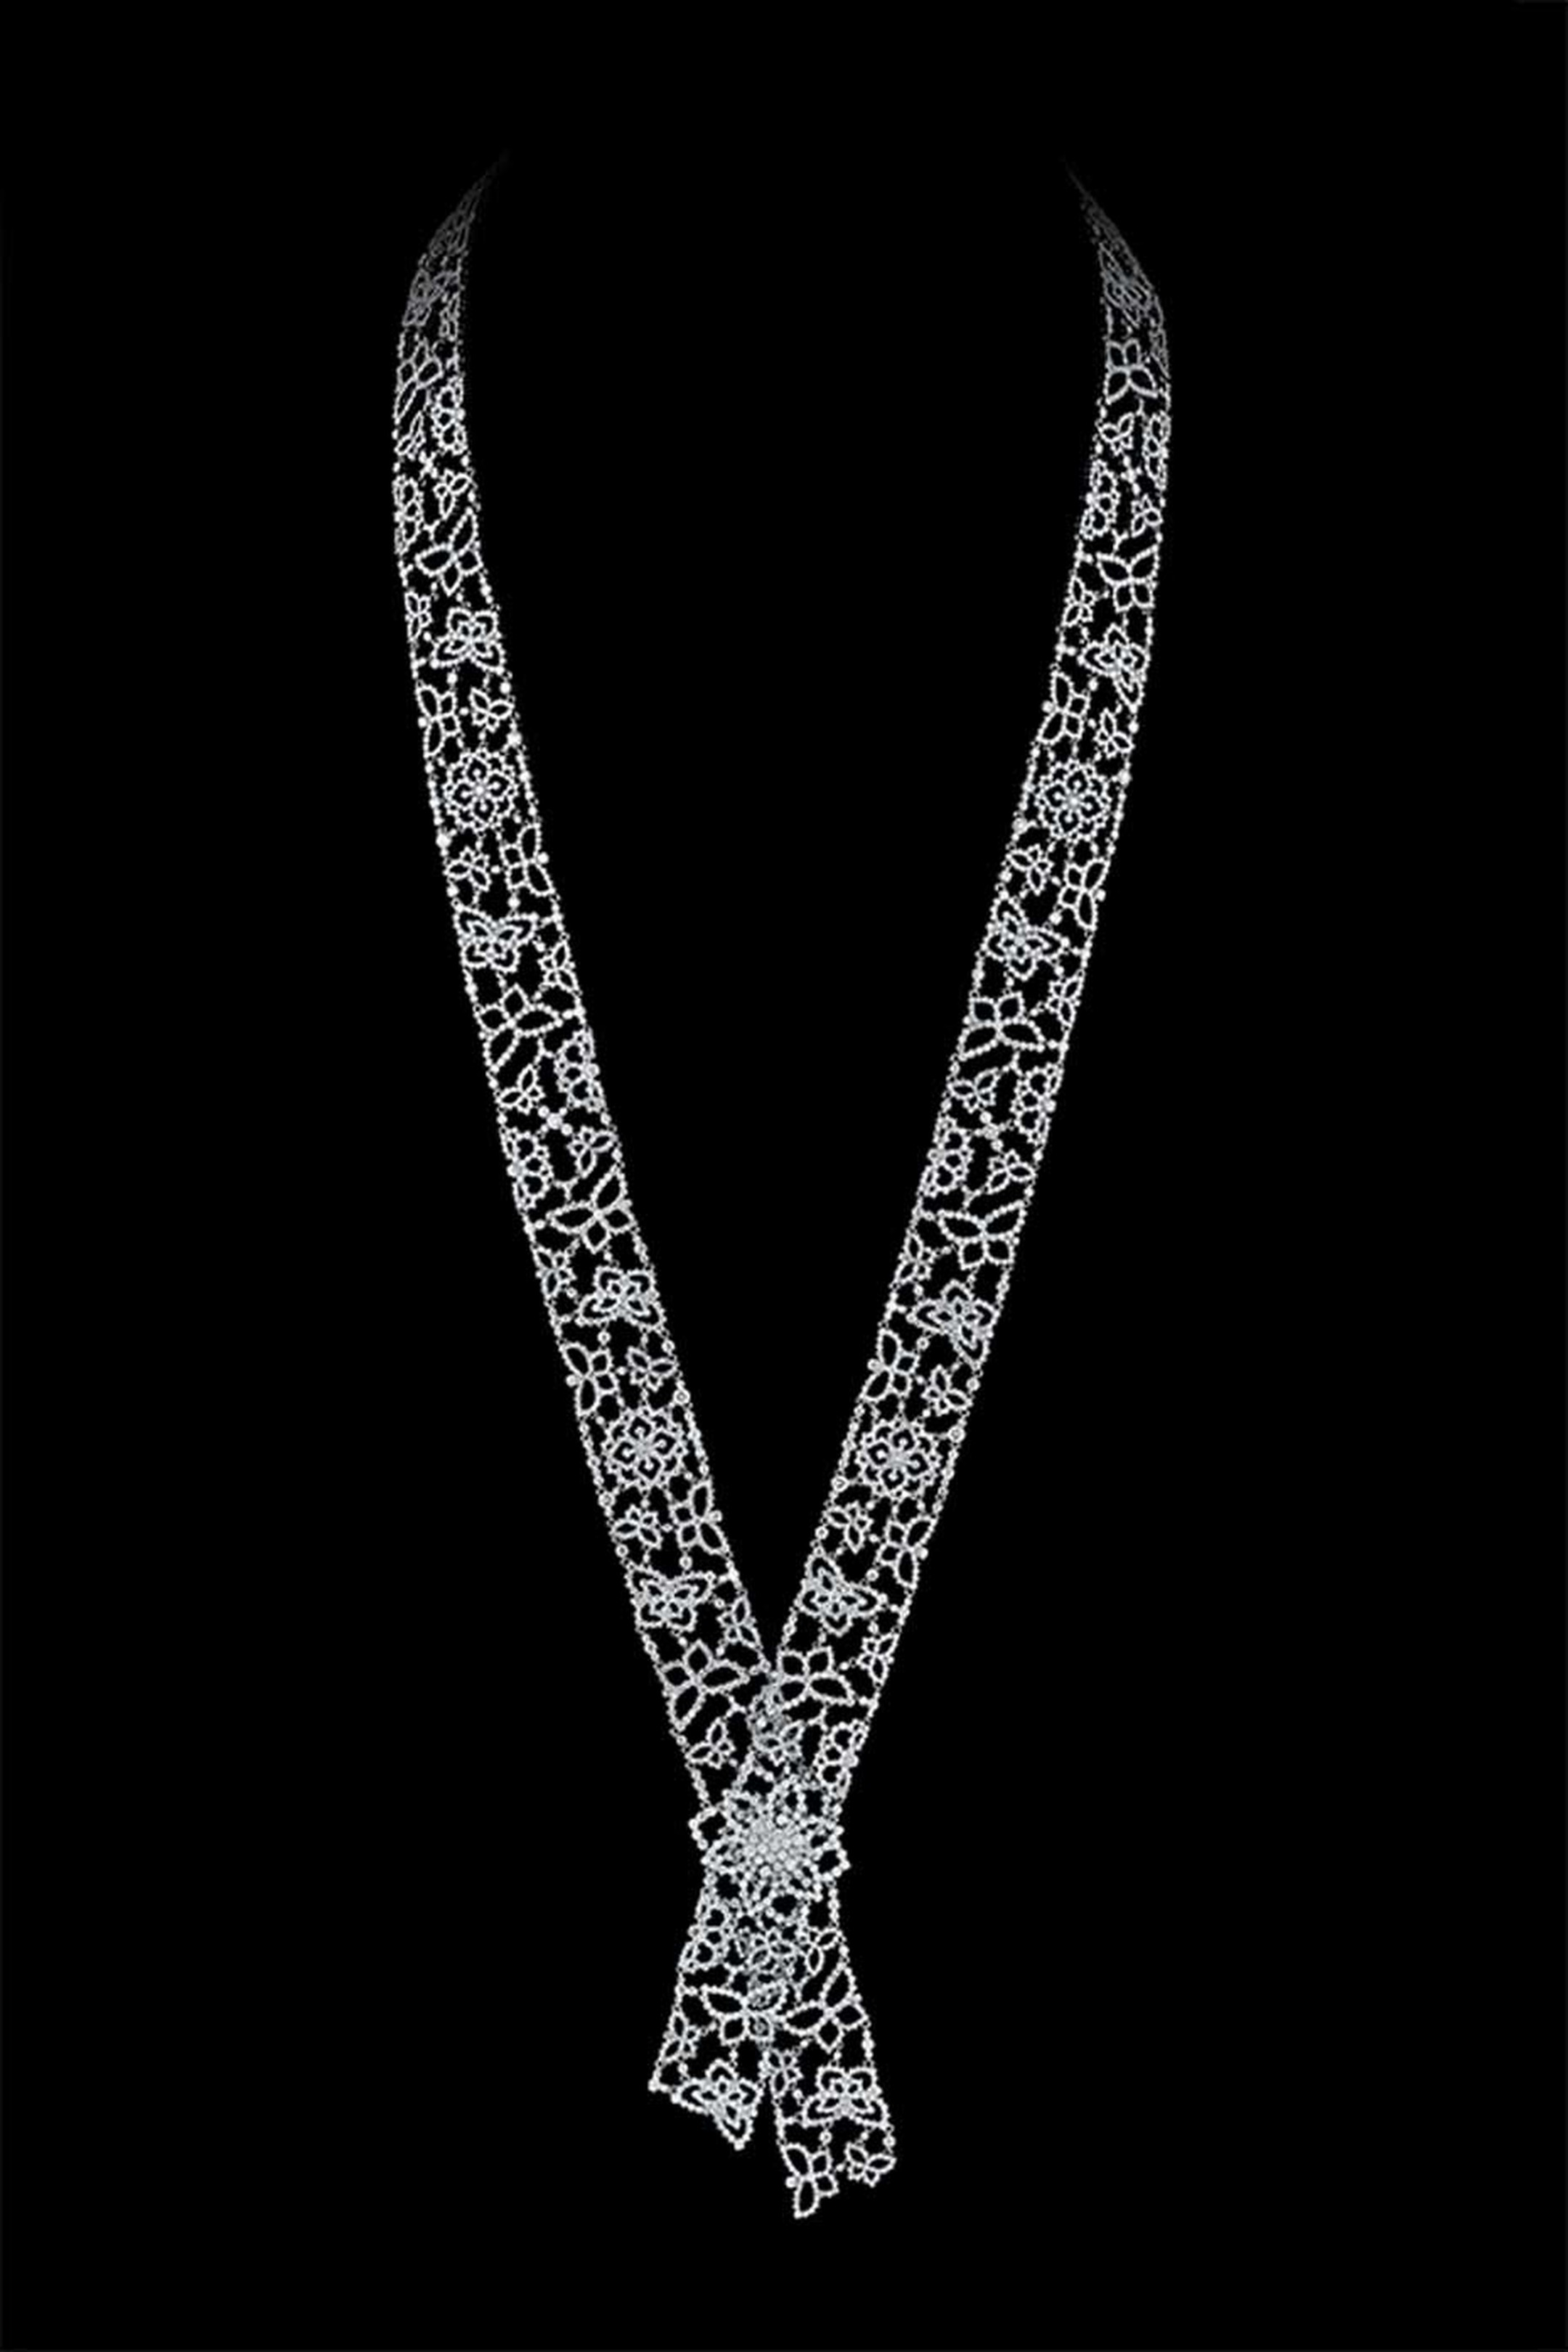 White gold and diamond necklace from Alexander Arne's new SnowChic collection.